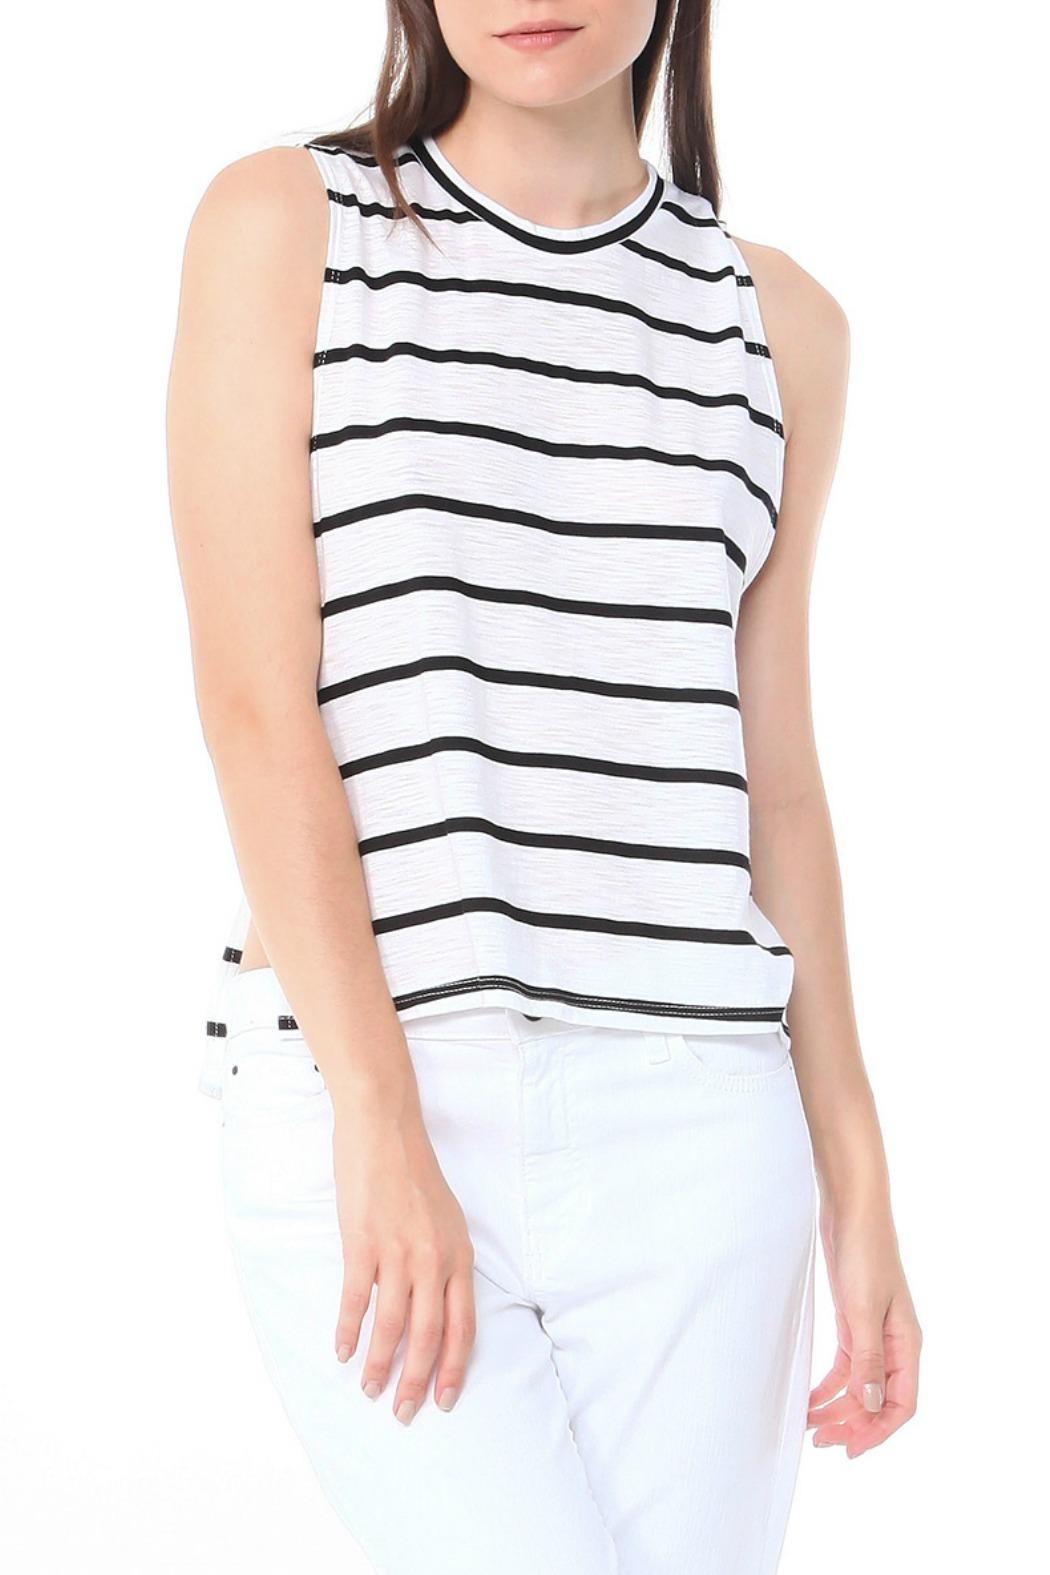 Michelle by Comune Chic Striped Tank - Main Image